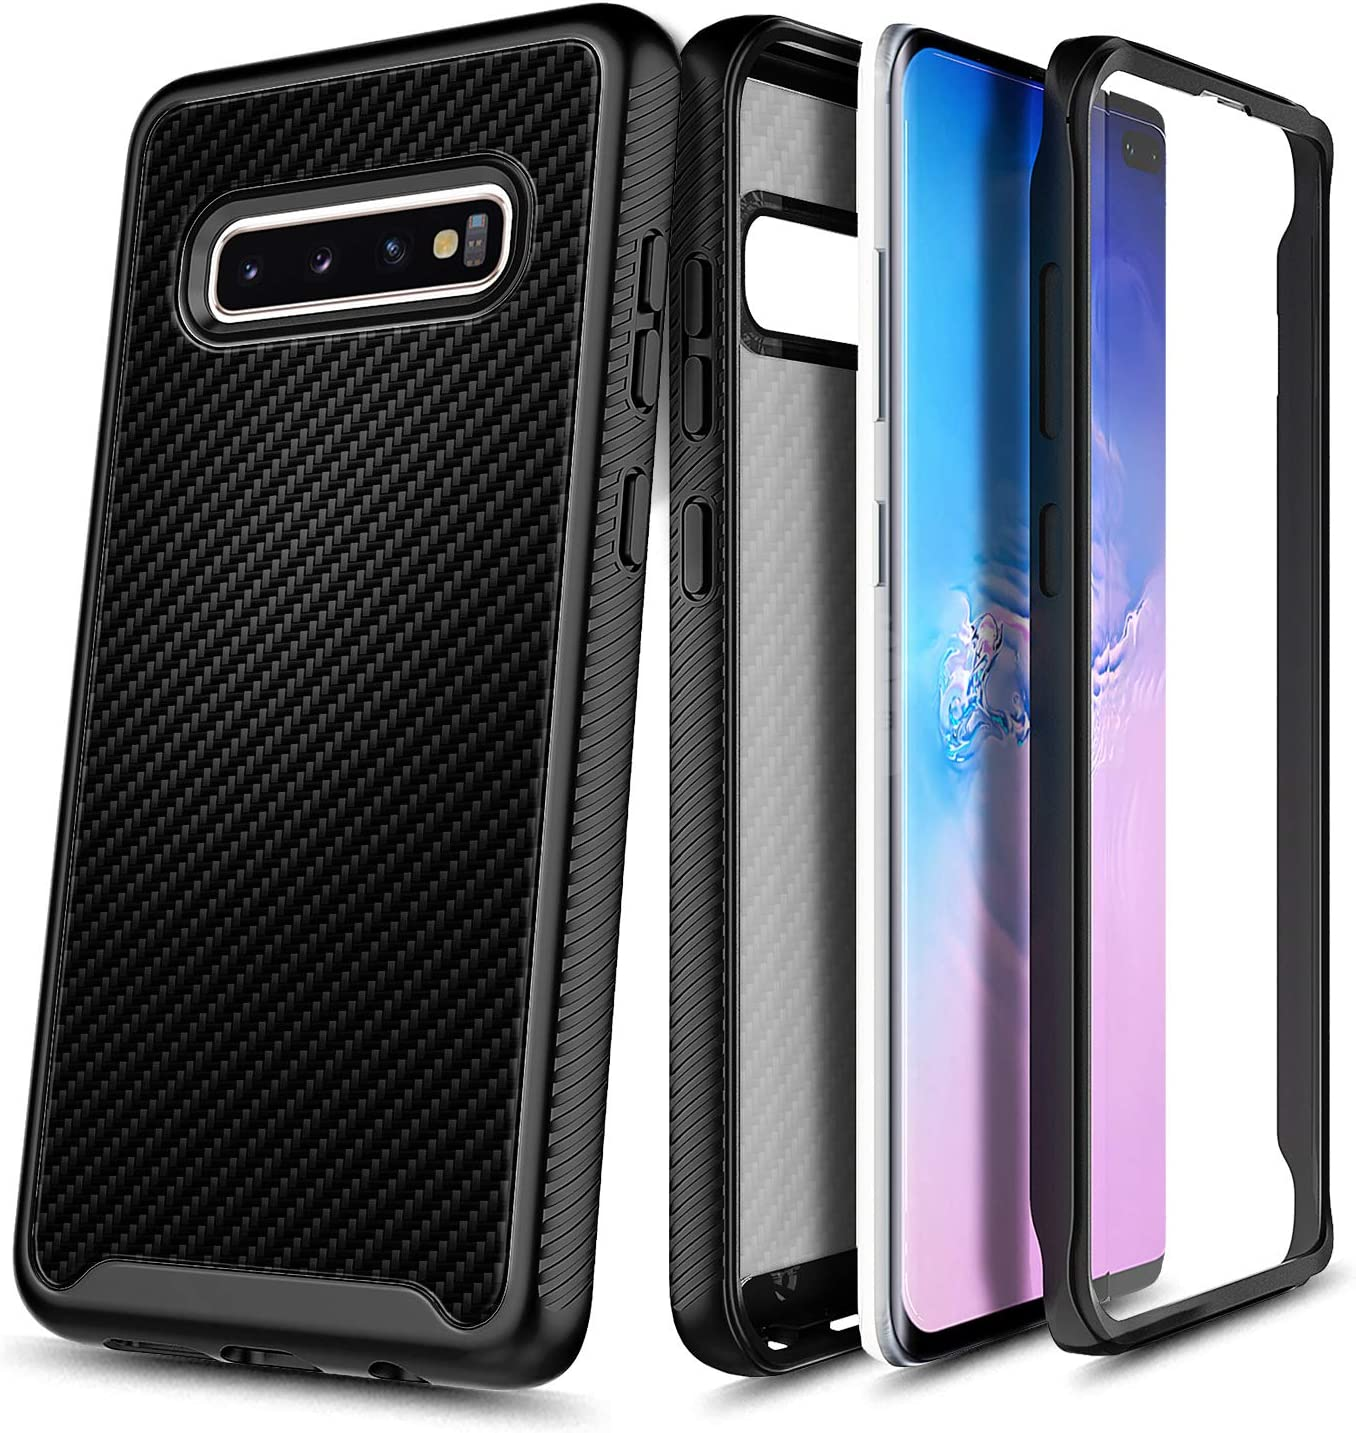 E-Began Case for Samsung Galaxy S10e, Full-Body Shockproof Protective Black Bumper Cover (Without Screen Protector), Support Wireless Charging, Durable Phone Case (5.8 inch) -Carbon Fiber